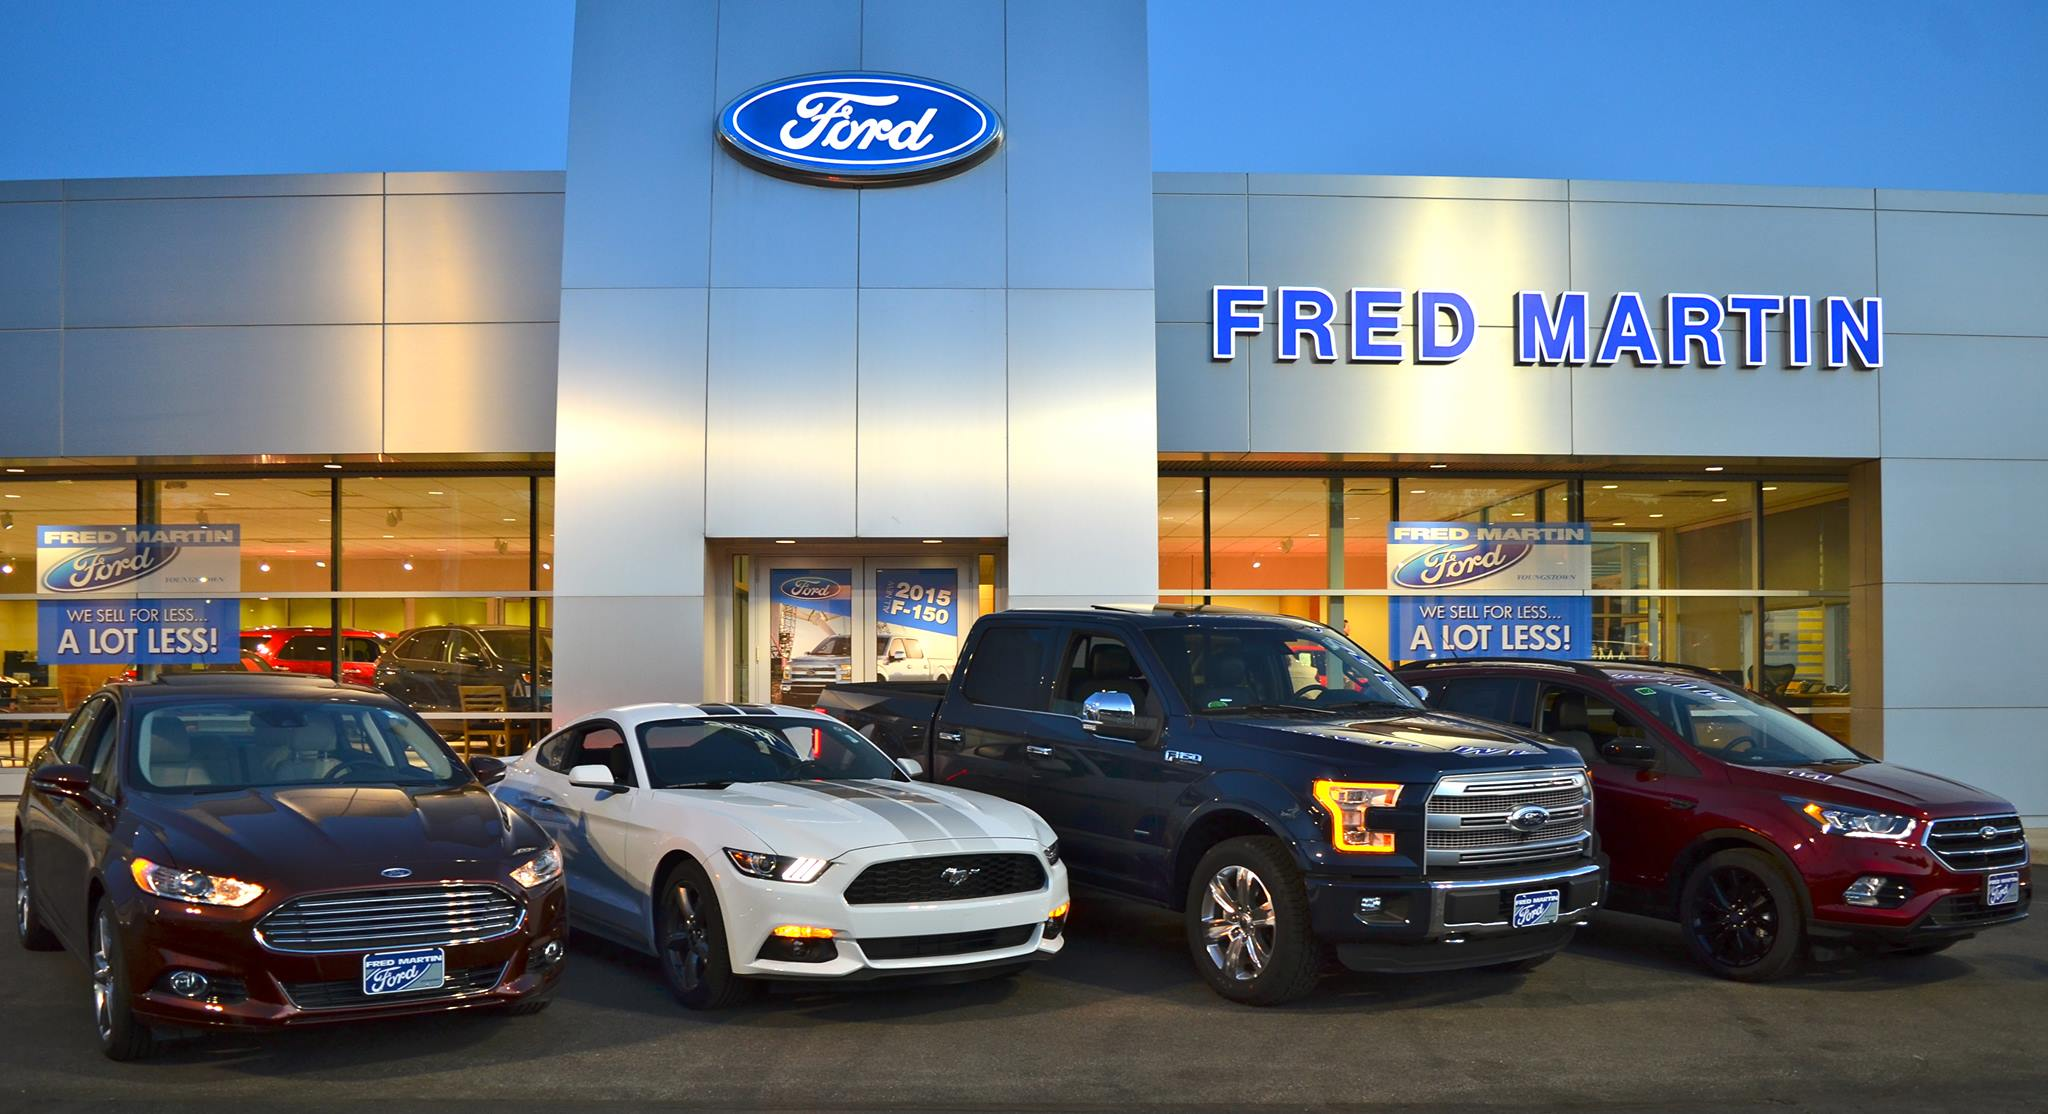 Fred Martin Ford Inc